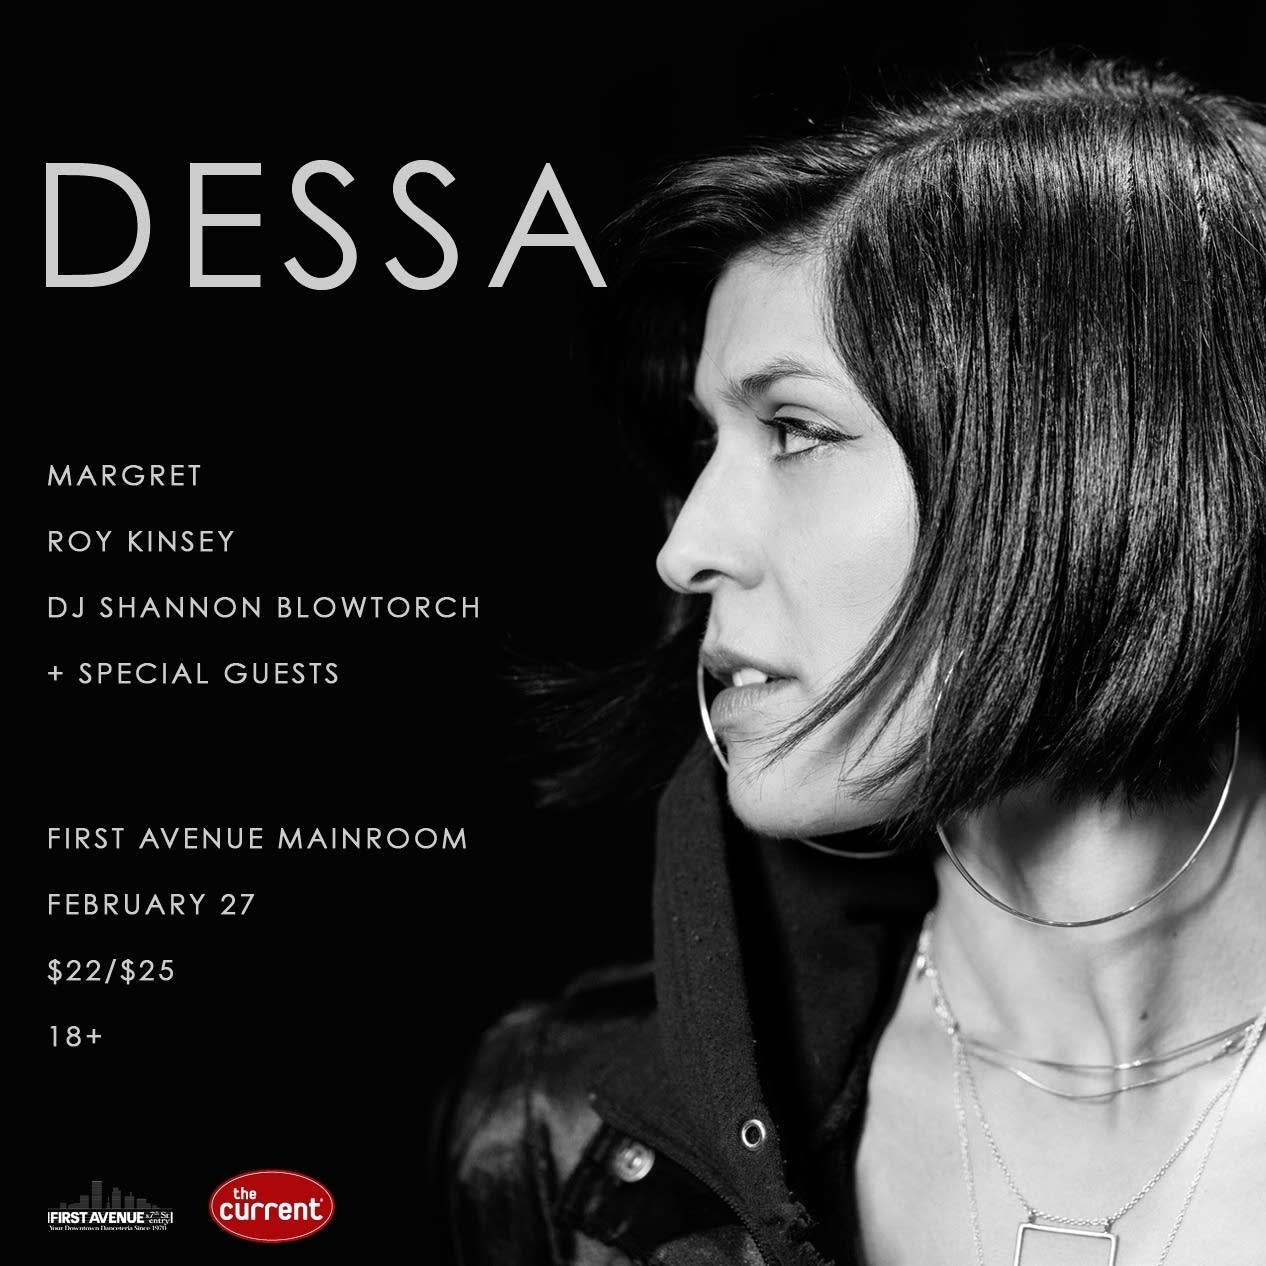 Dessa at First Avenue February 27, 2020